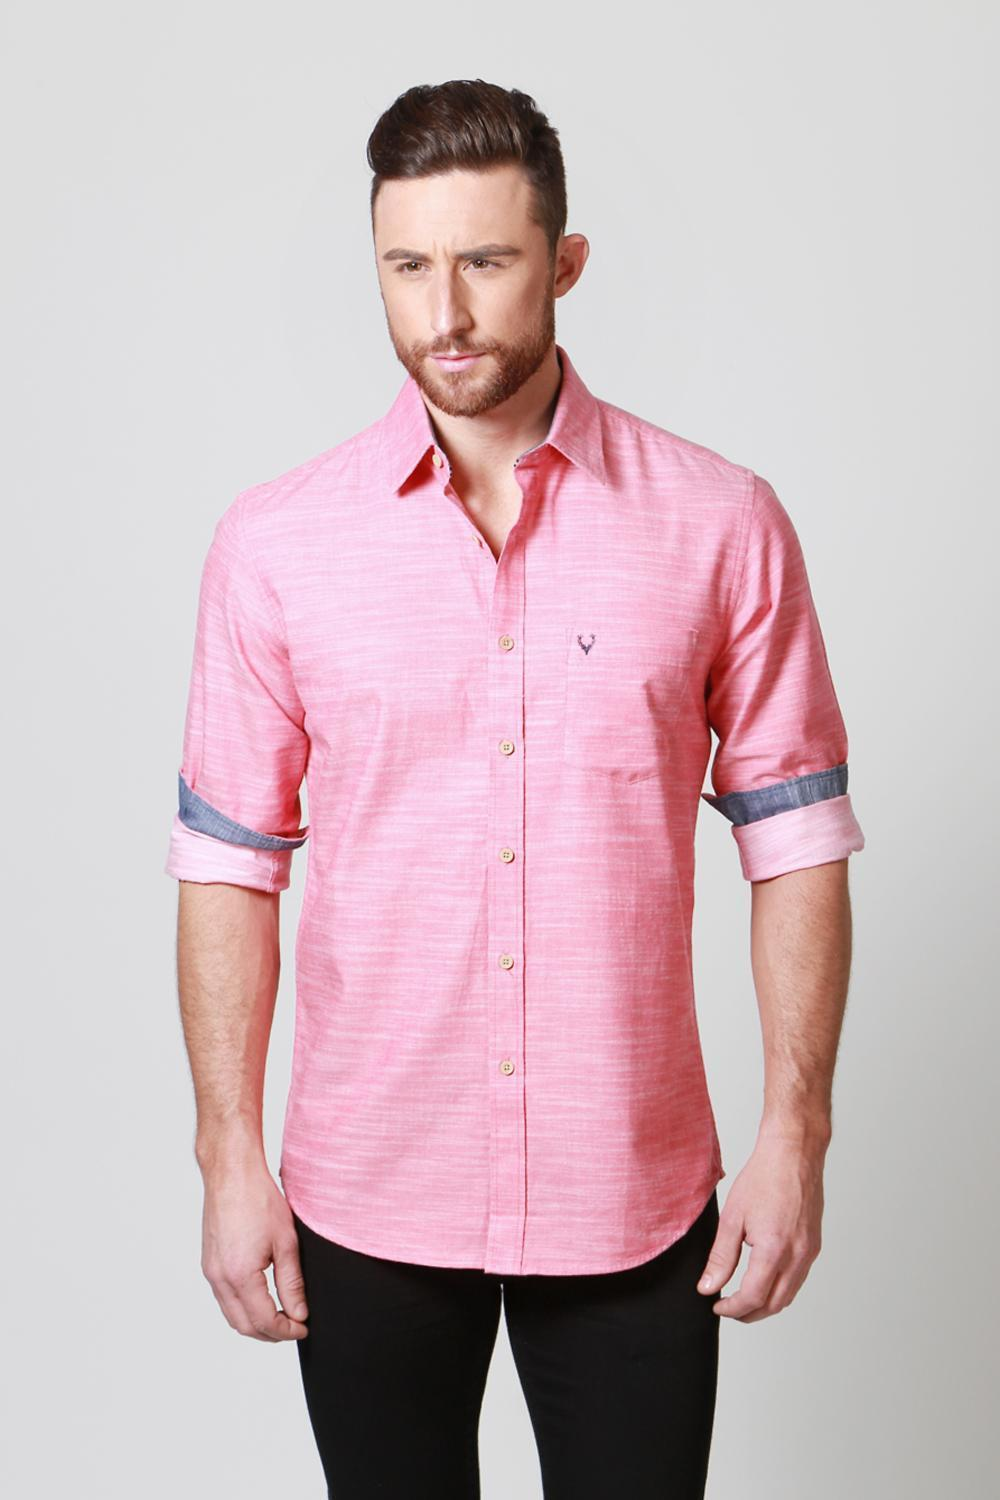 Buy Allen Solly Mens Shirt-Formal Shirts, Casual Shirts for Men ...